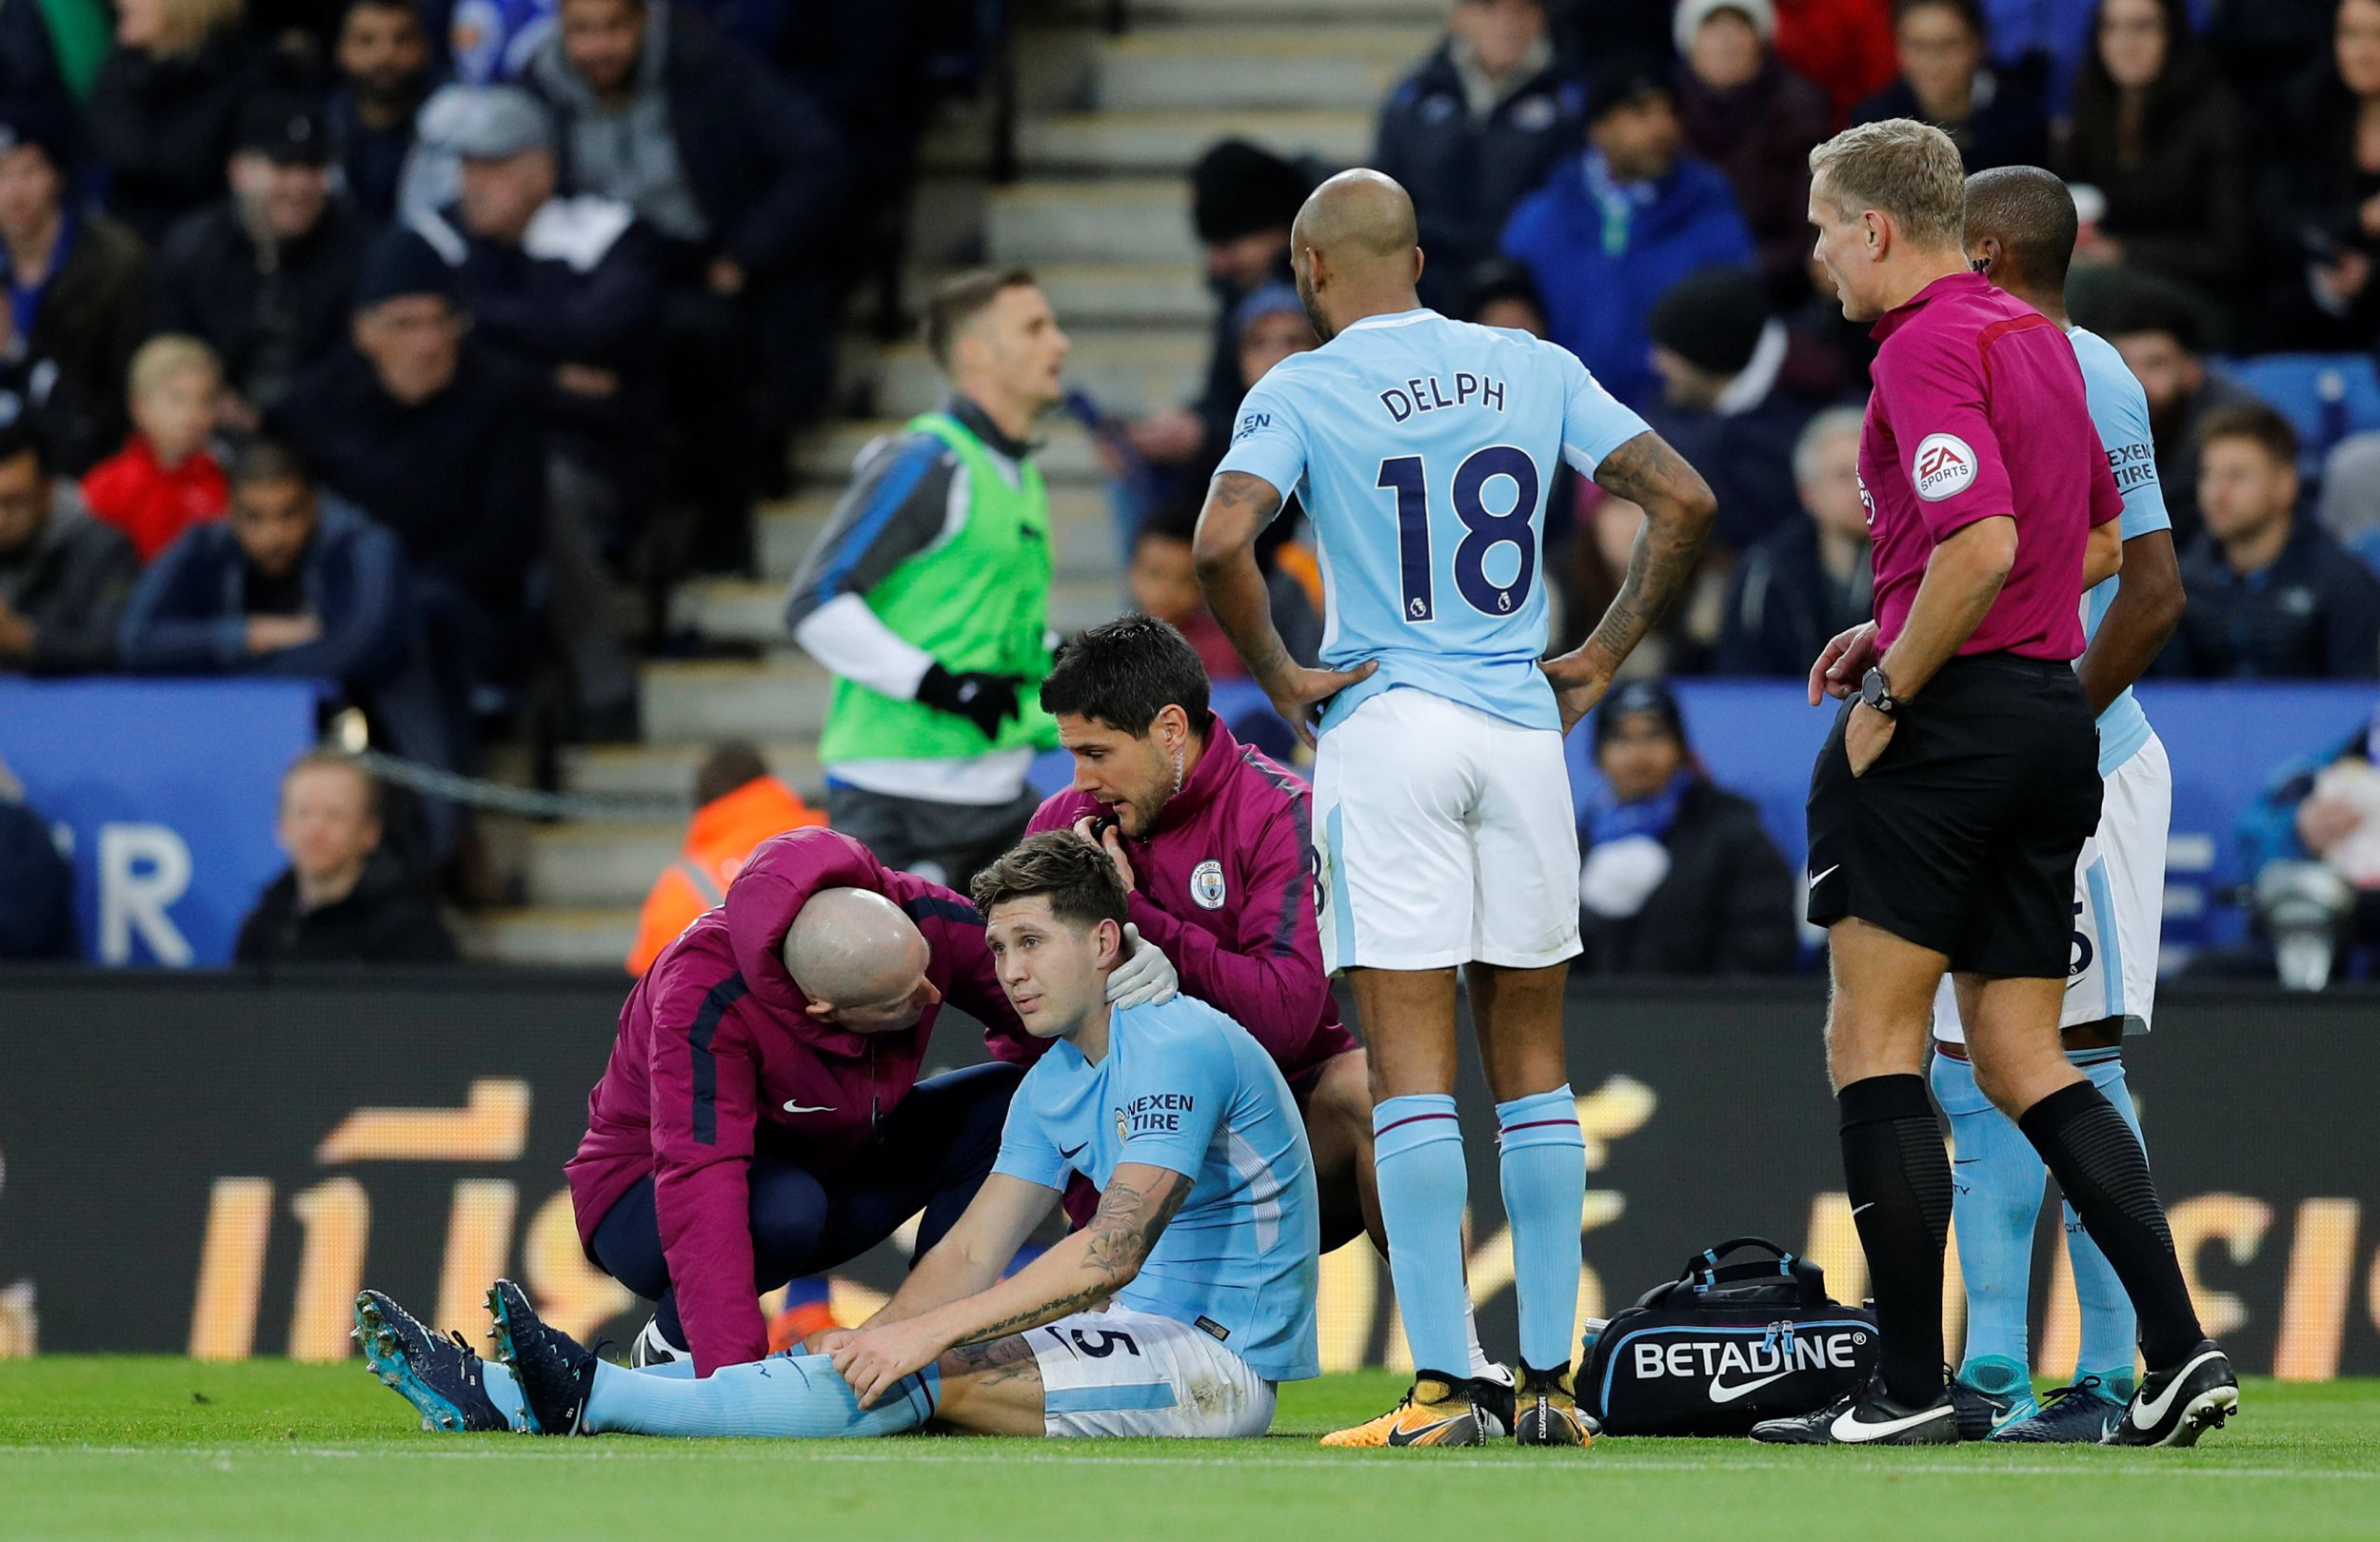 Pep Guardiola attributes John Stones' hamstring injury to playing unnecessary international football